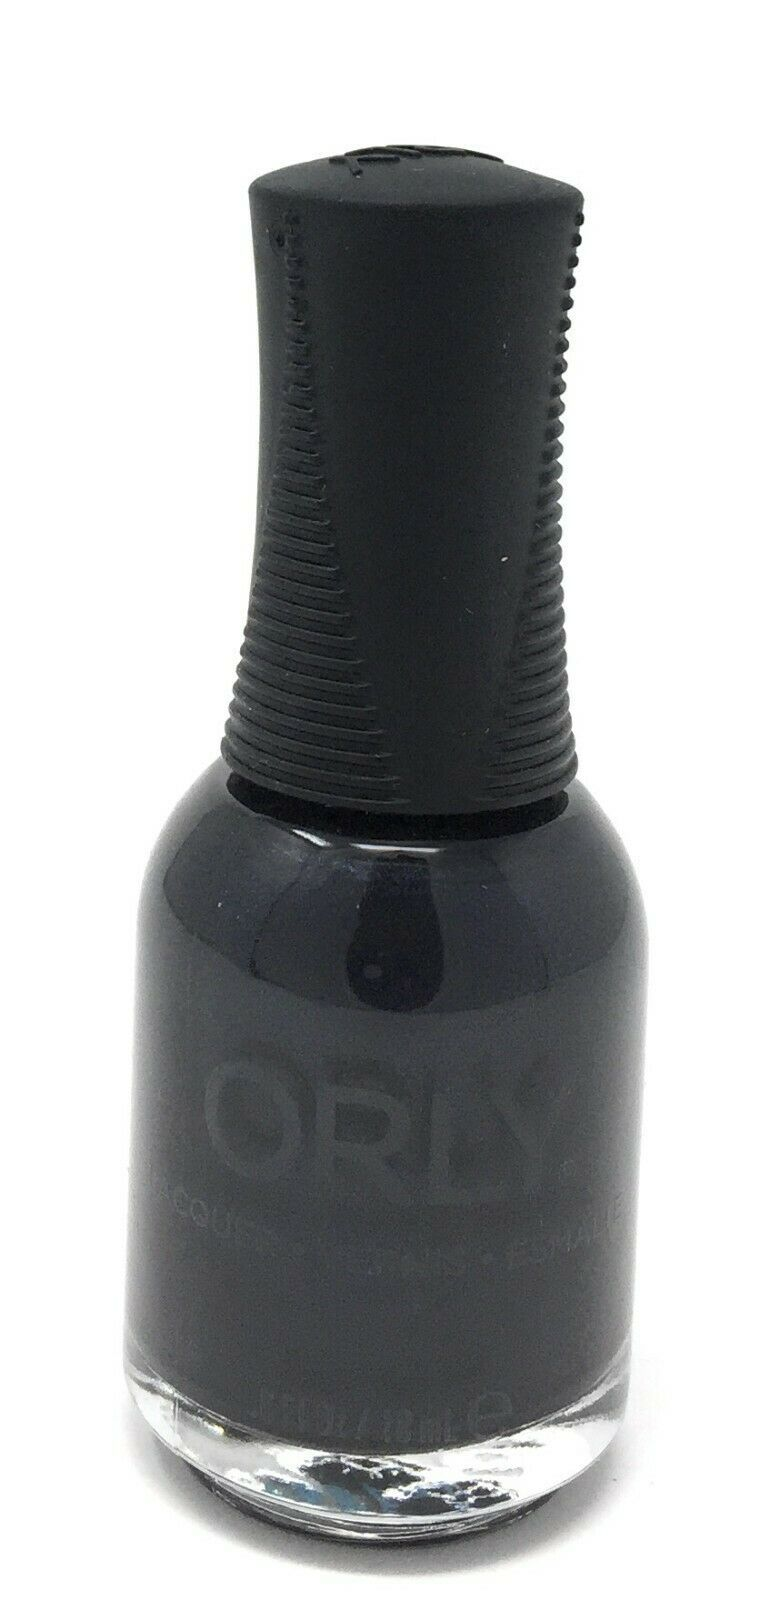 Primary image for 2000035 - Orly Nail Lacquer - Below Zero  .6oz